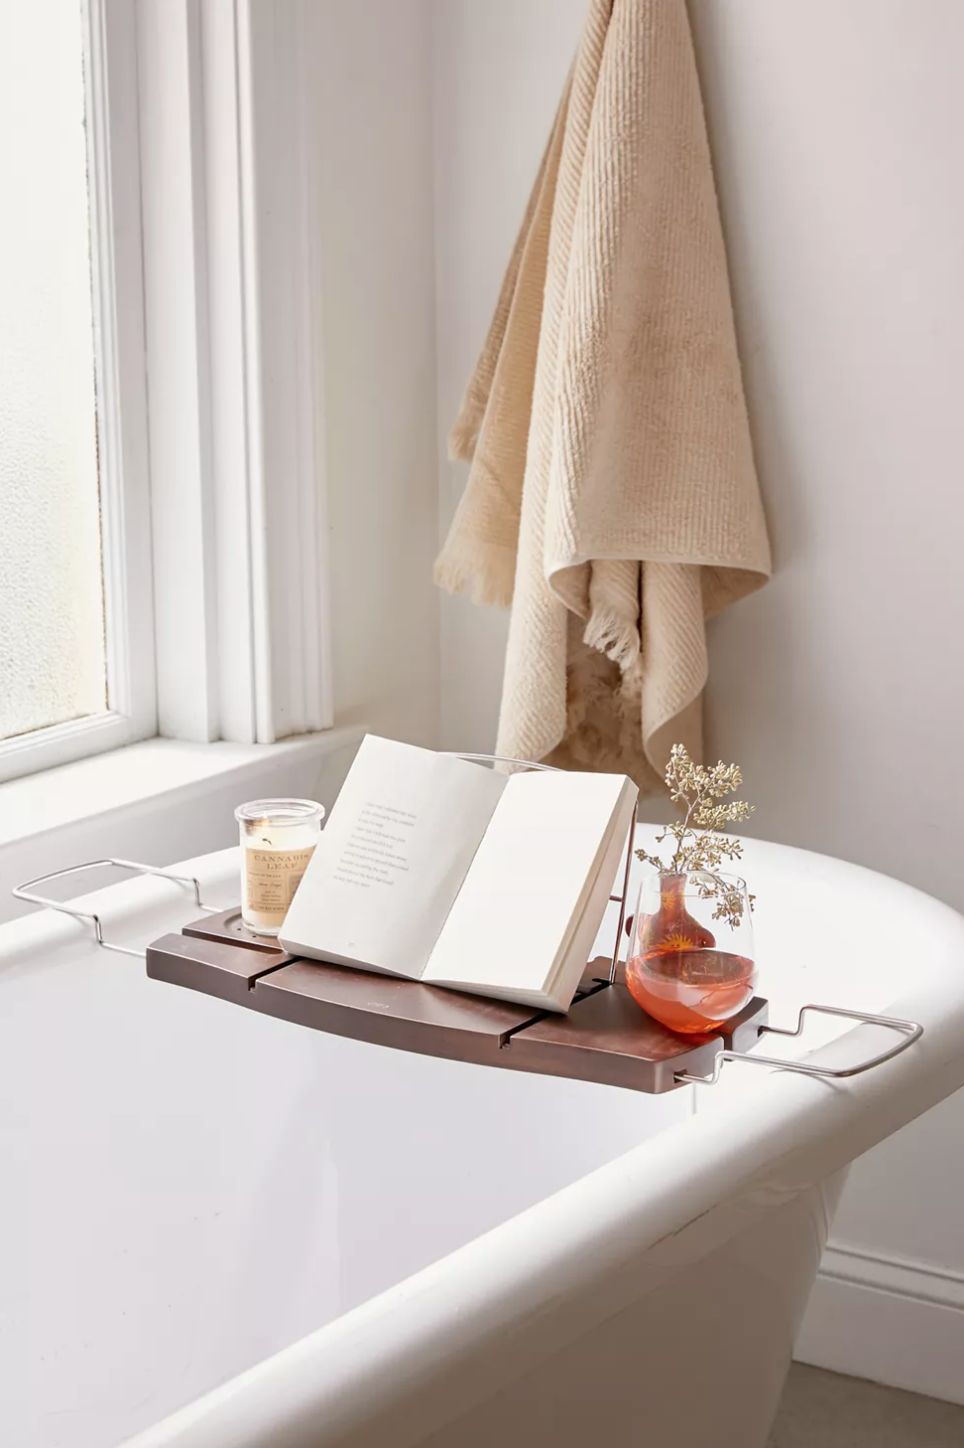 bath caddy tray